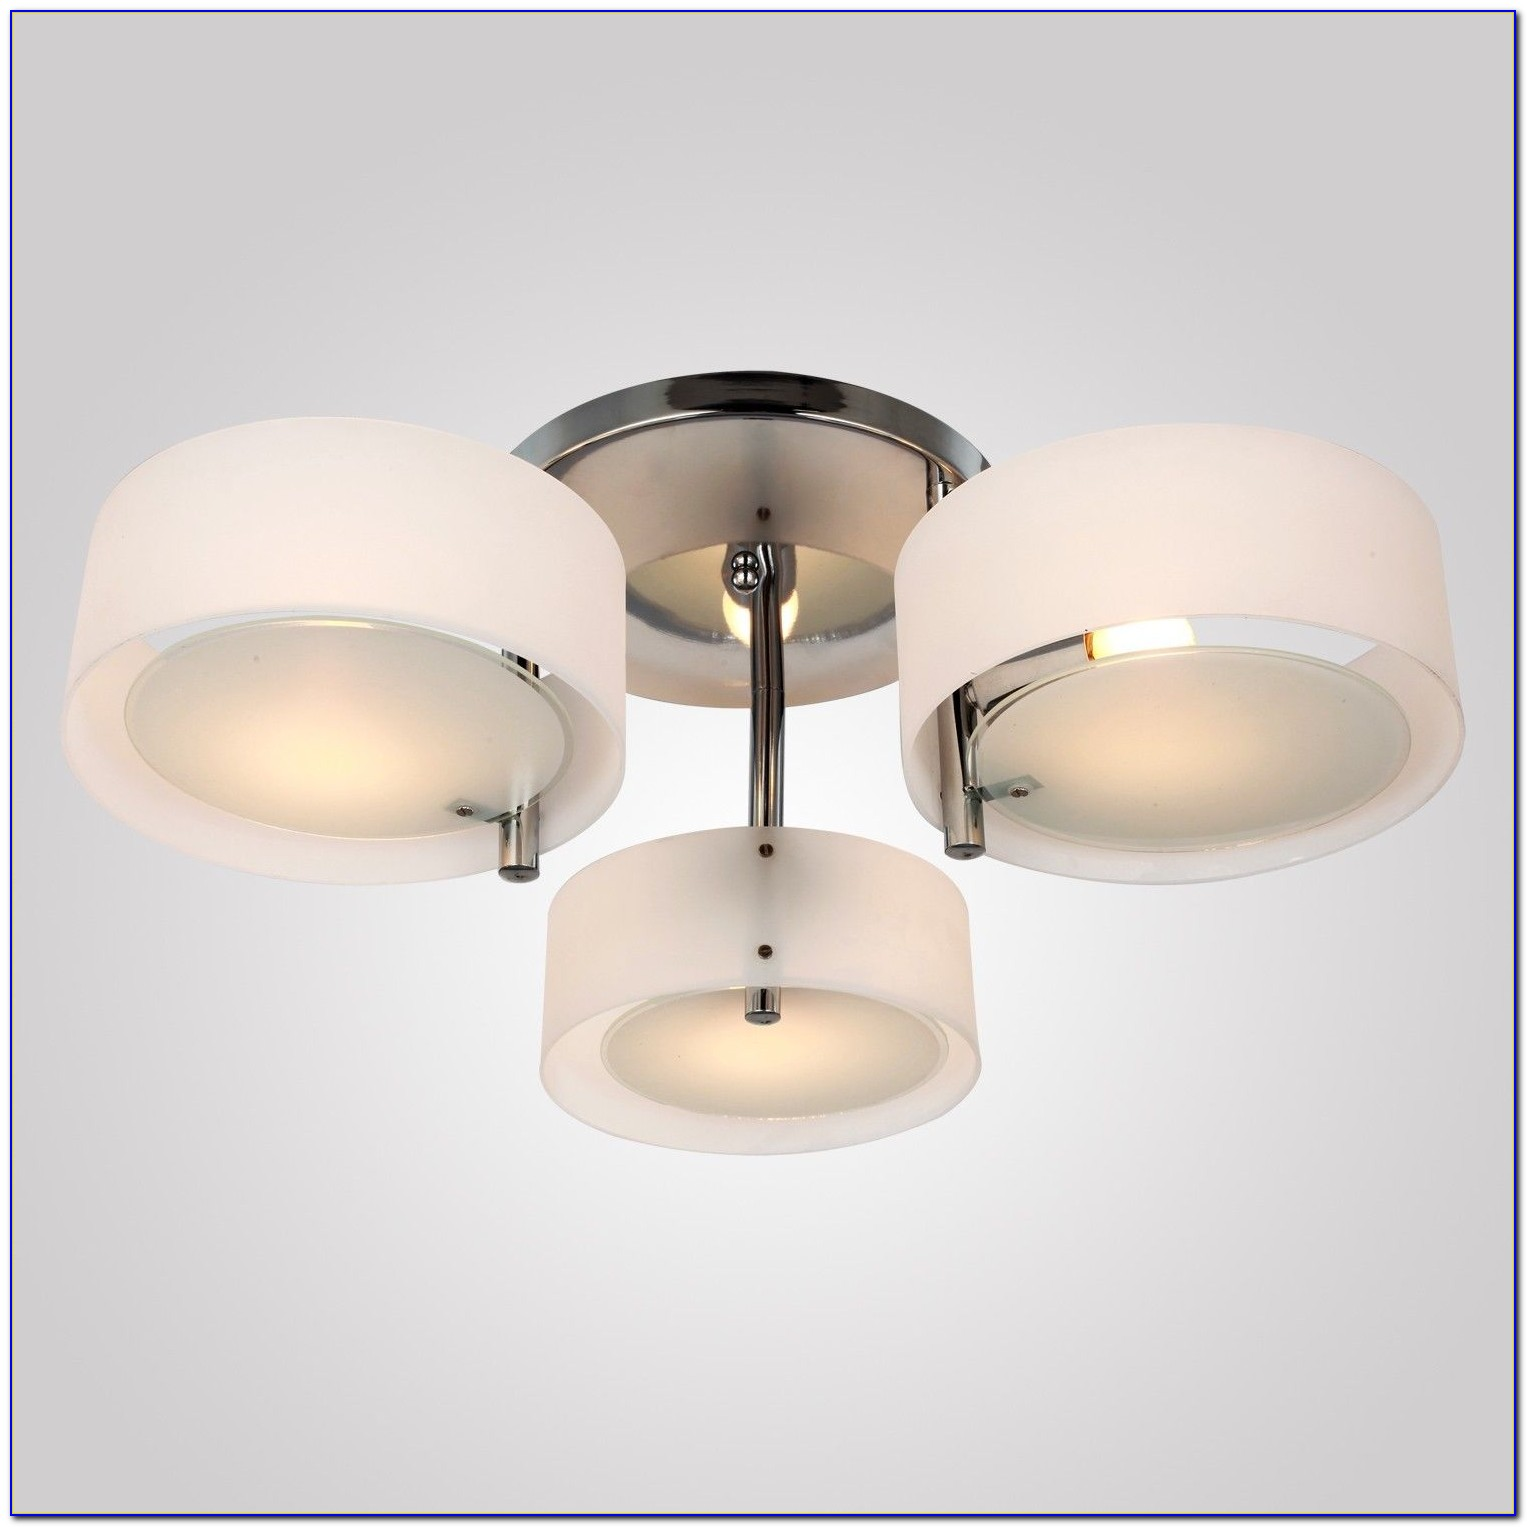 Modern Overhead Light Fixtures